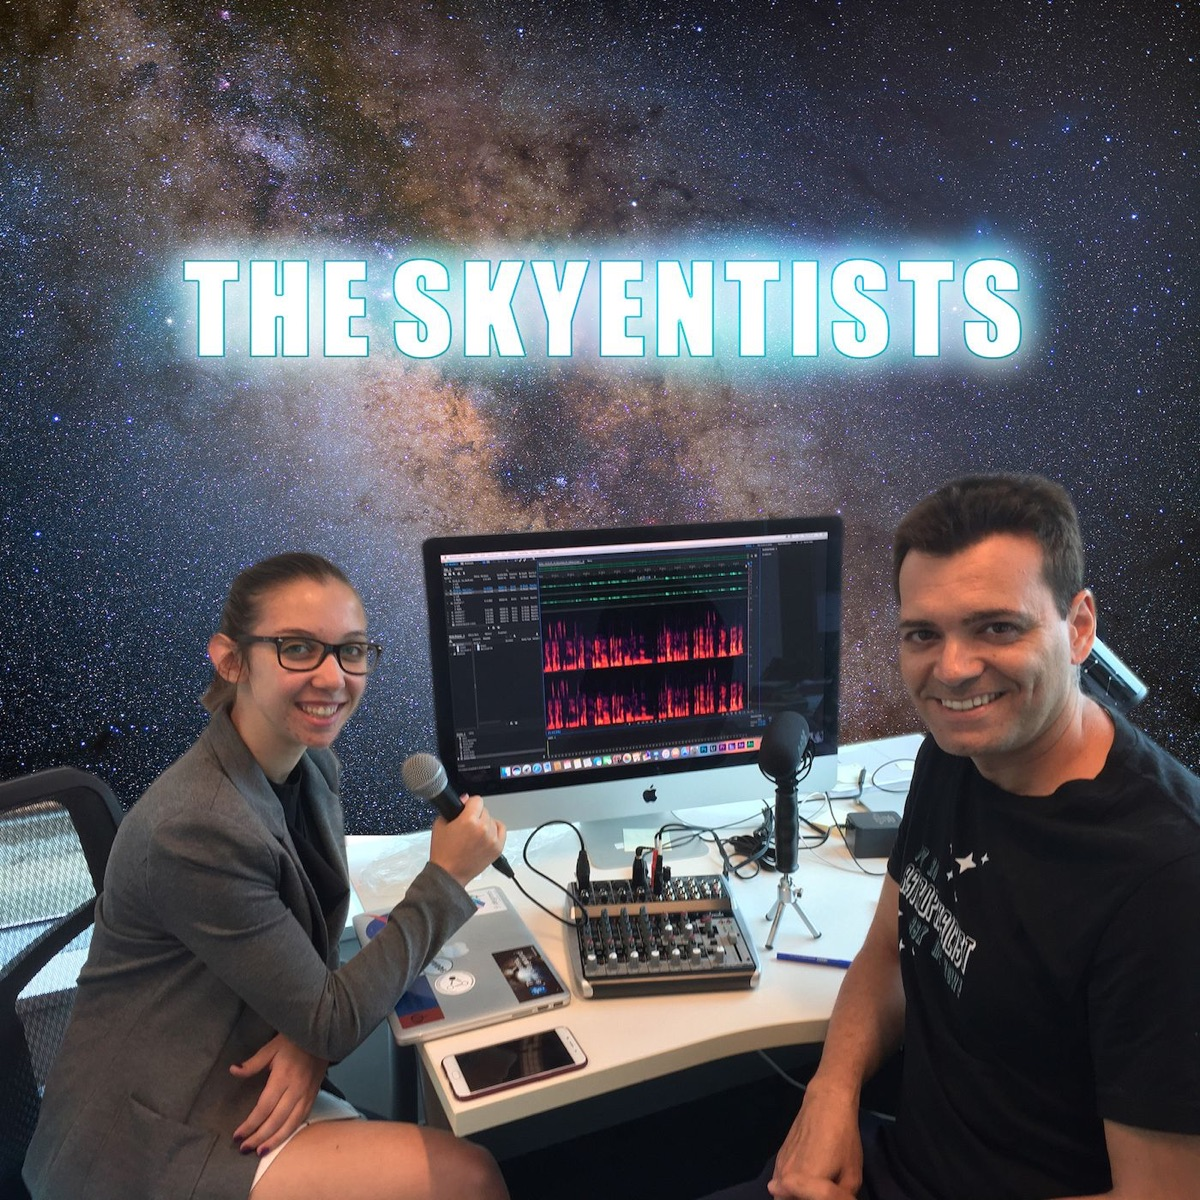 The Skyentists